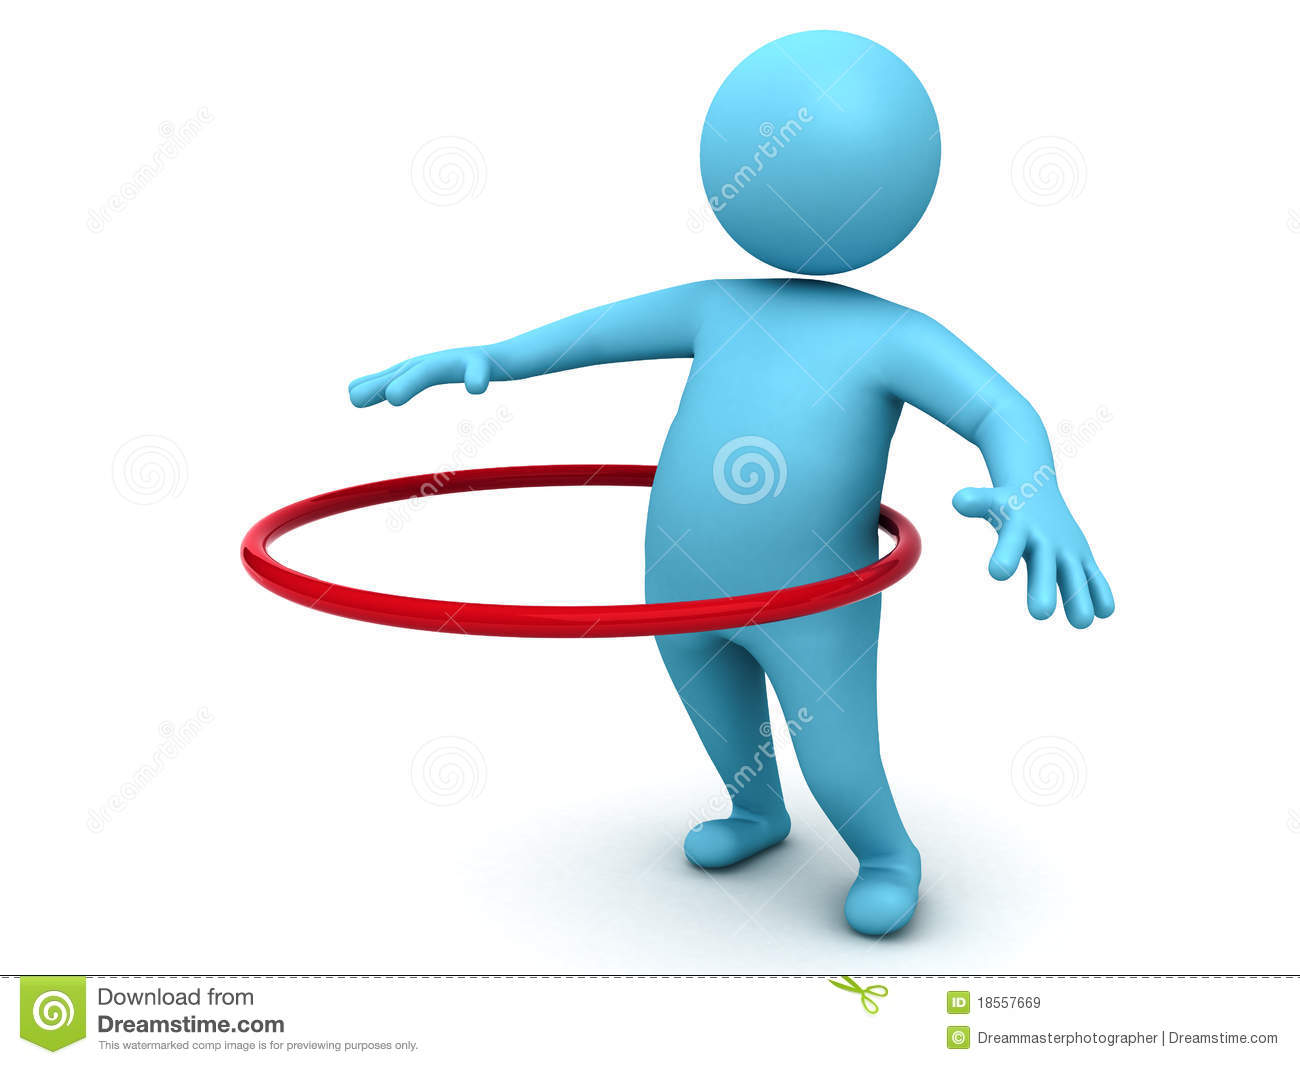 Hula Hoop Exercise Royalty Free Stock Images - Image: 18557669